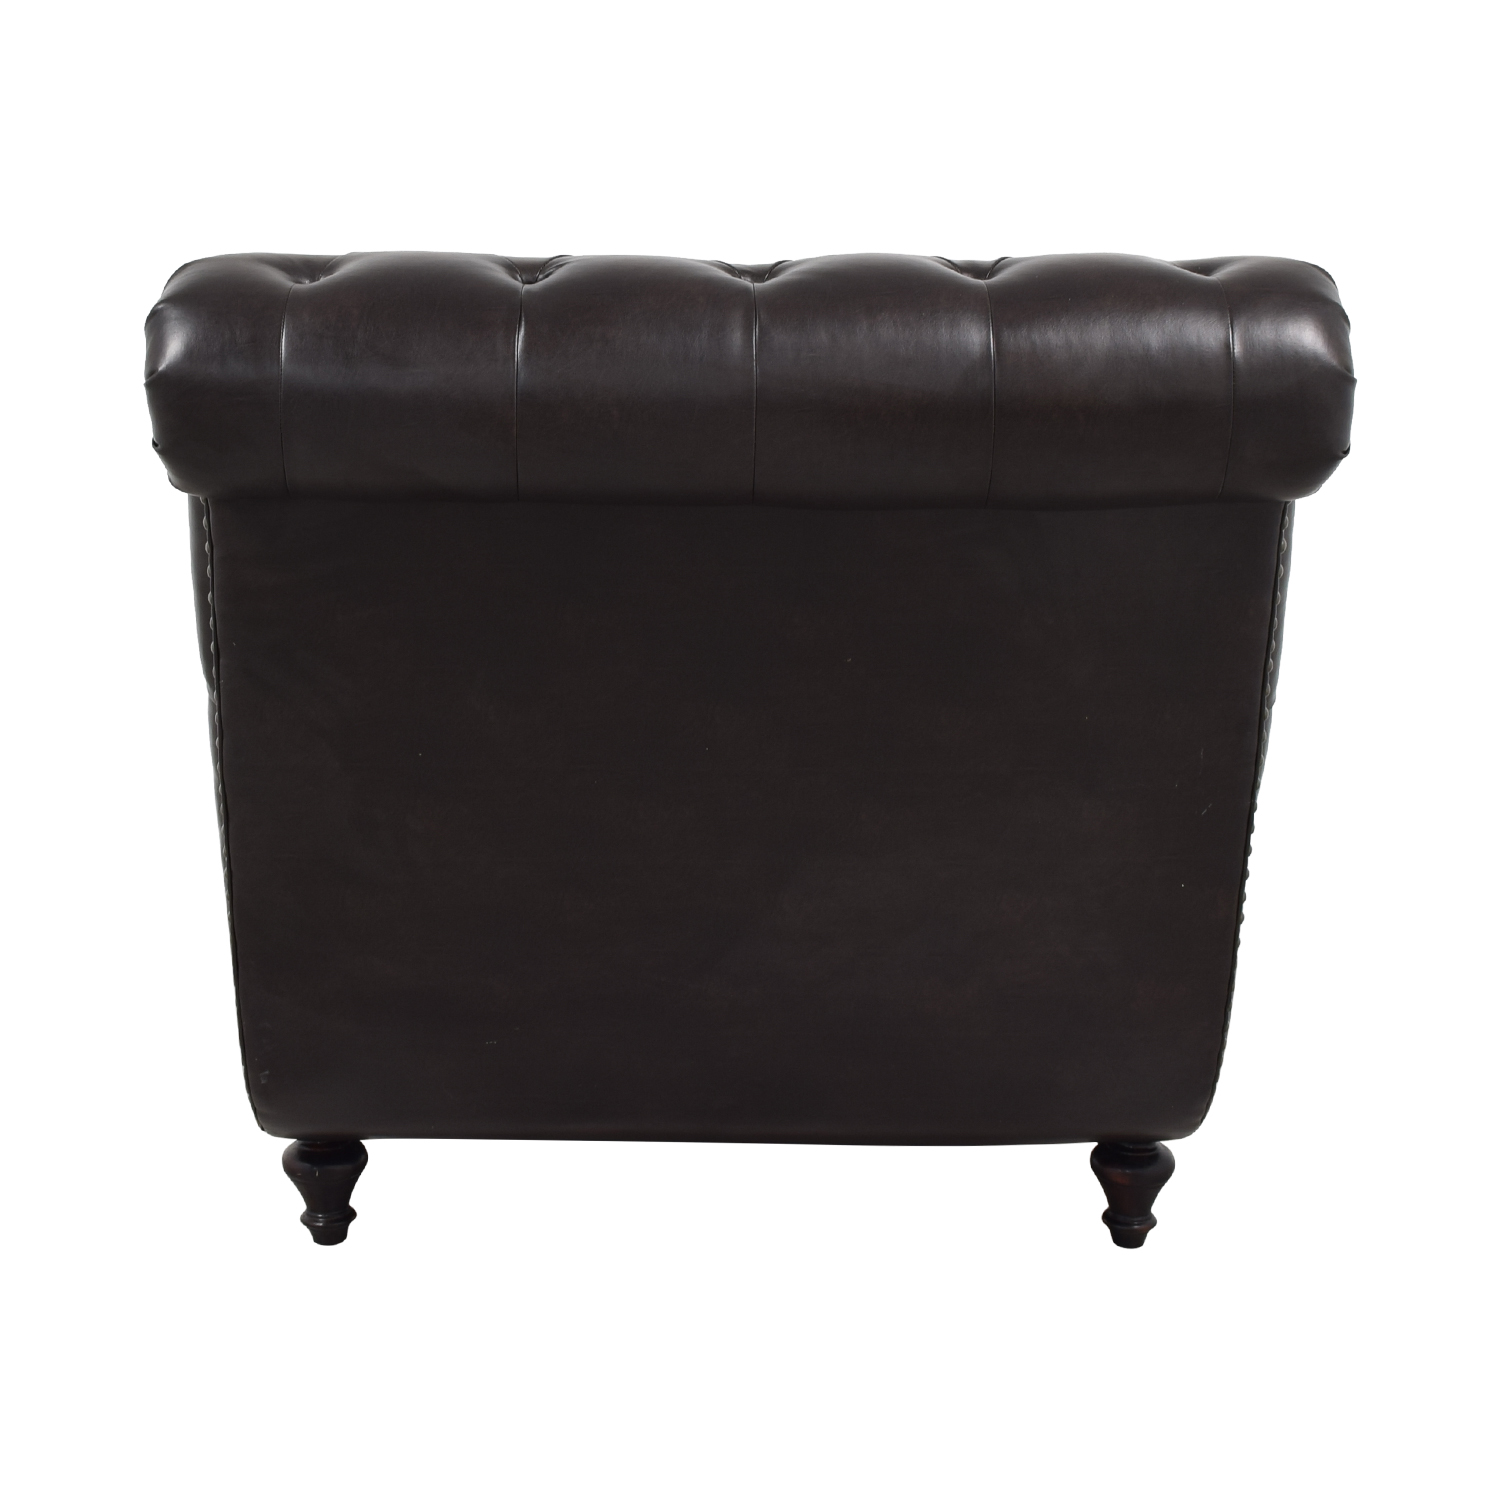 Raymour & Flanigan Raymour & Flanigan Sumter Brown Tufted Leather Chaise dimensions